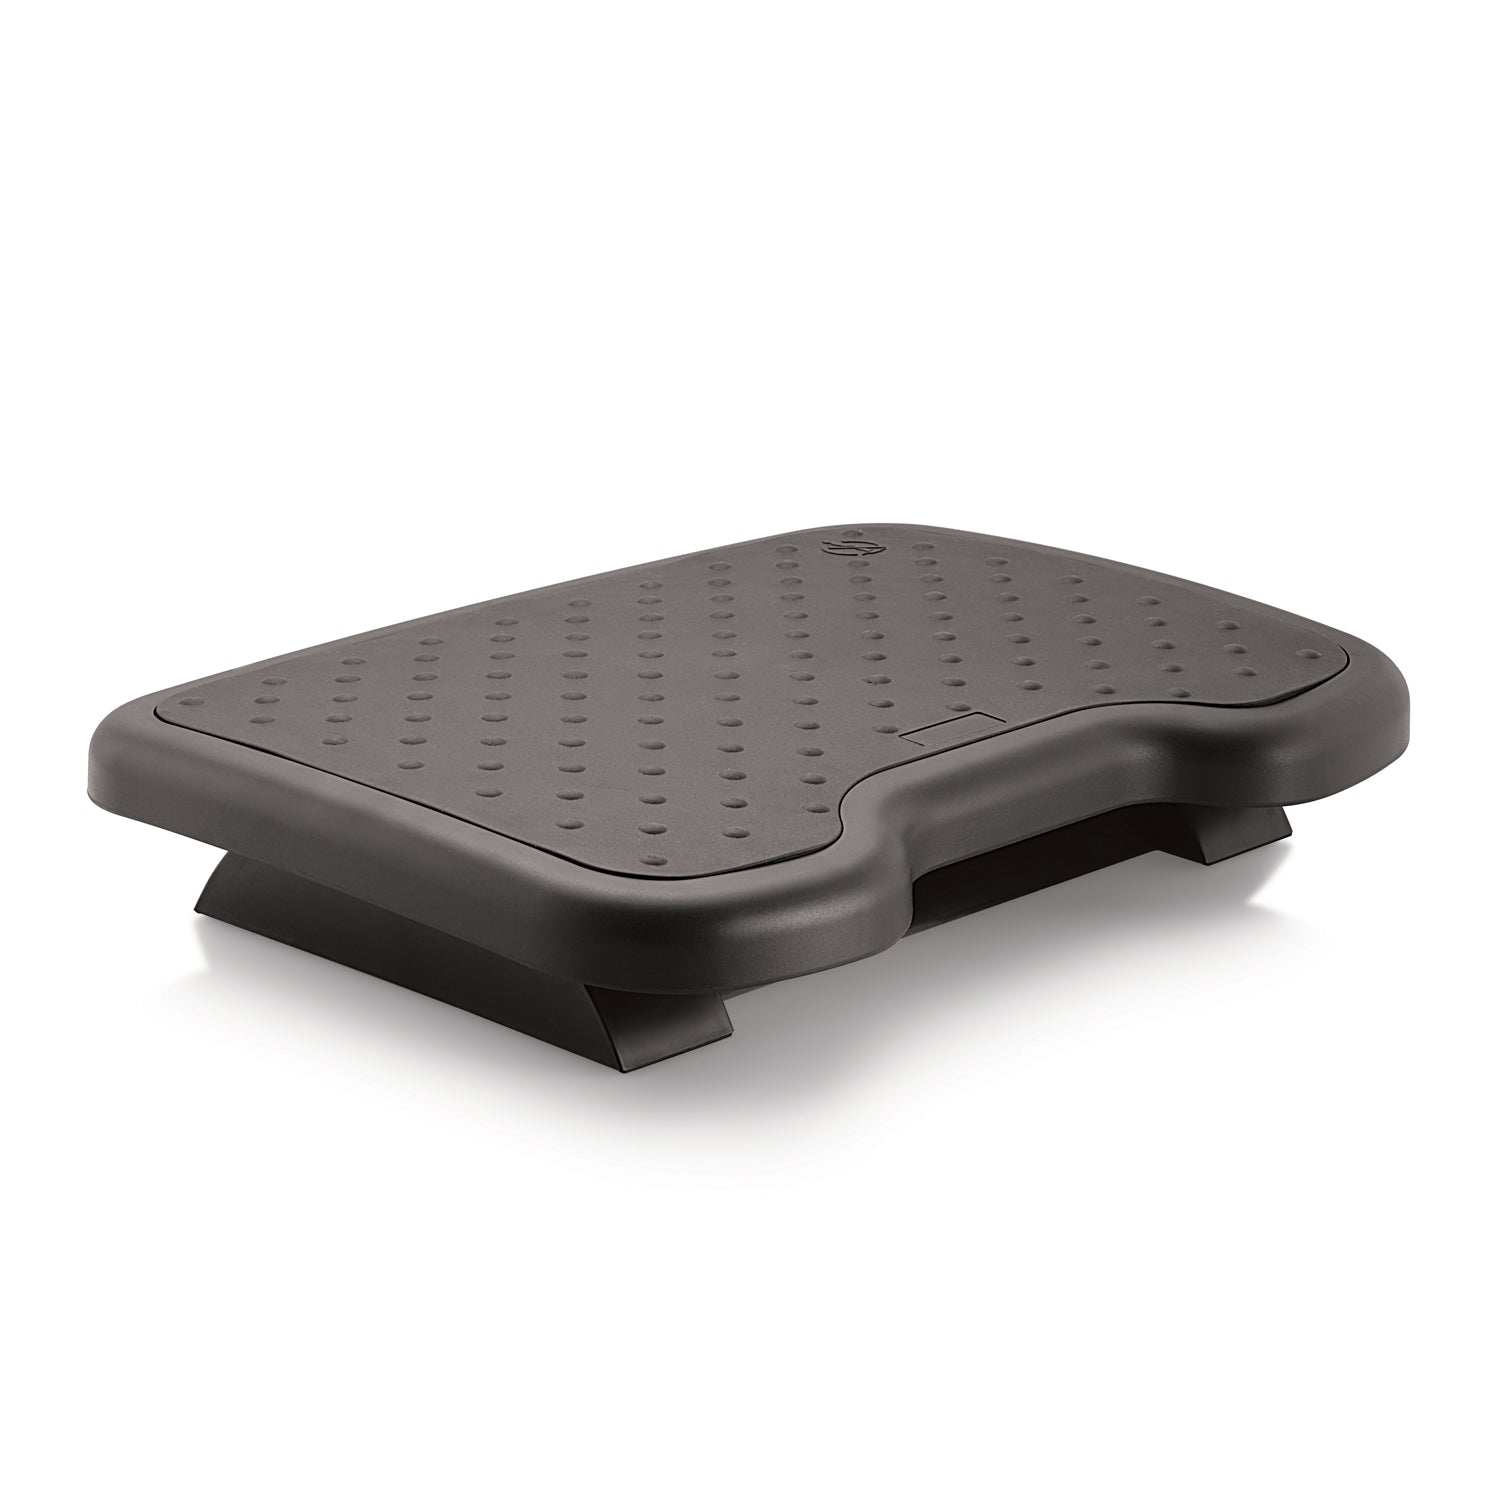 PALO002 Ergonomic Footrest - With Detachable TPR Surface